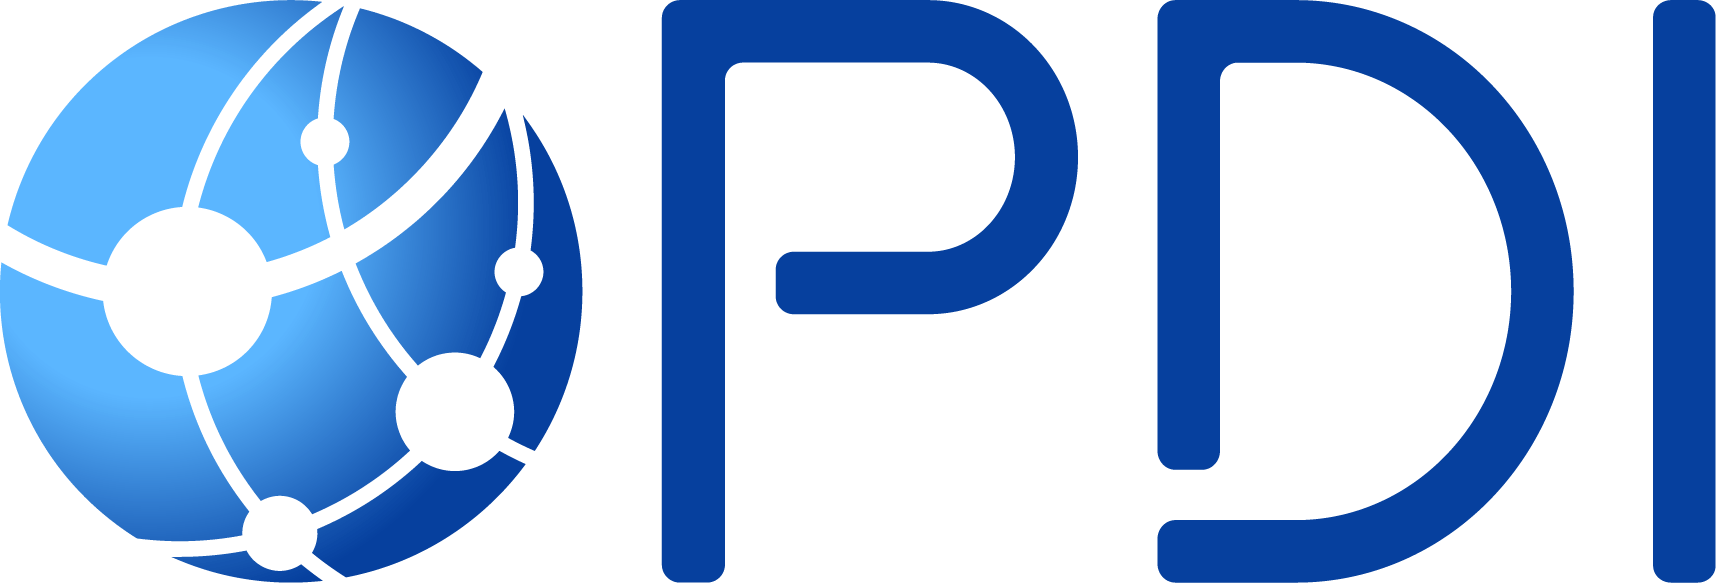 PDI acquires ControlScan Managed Security Services